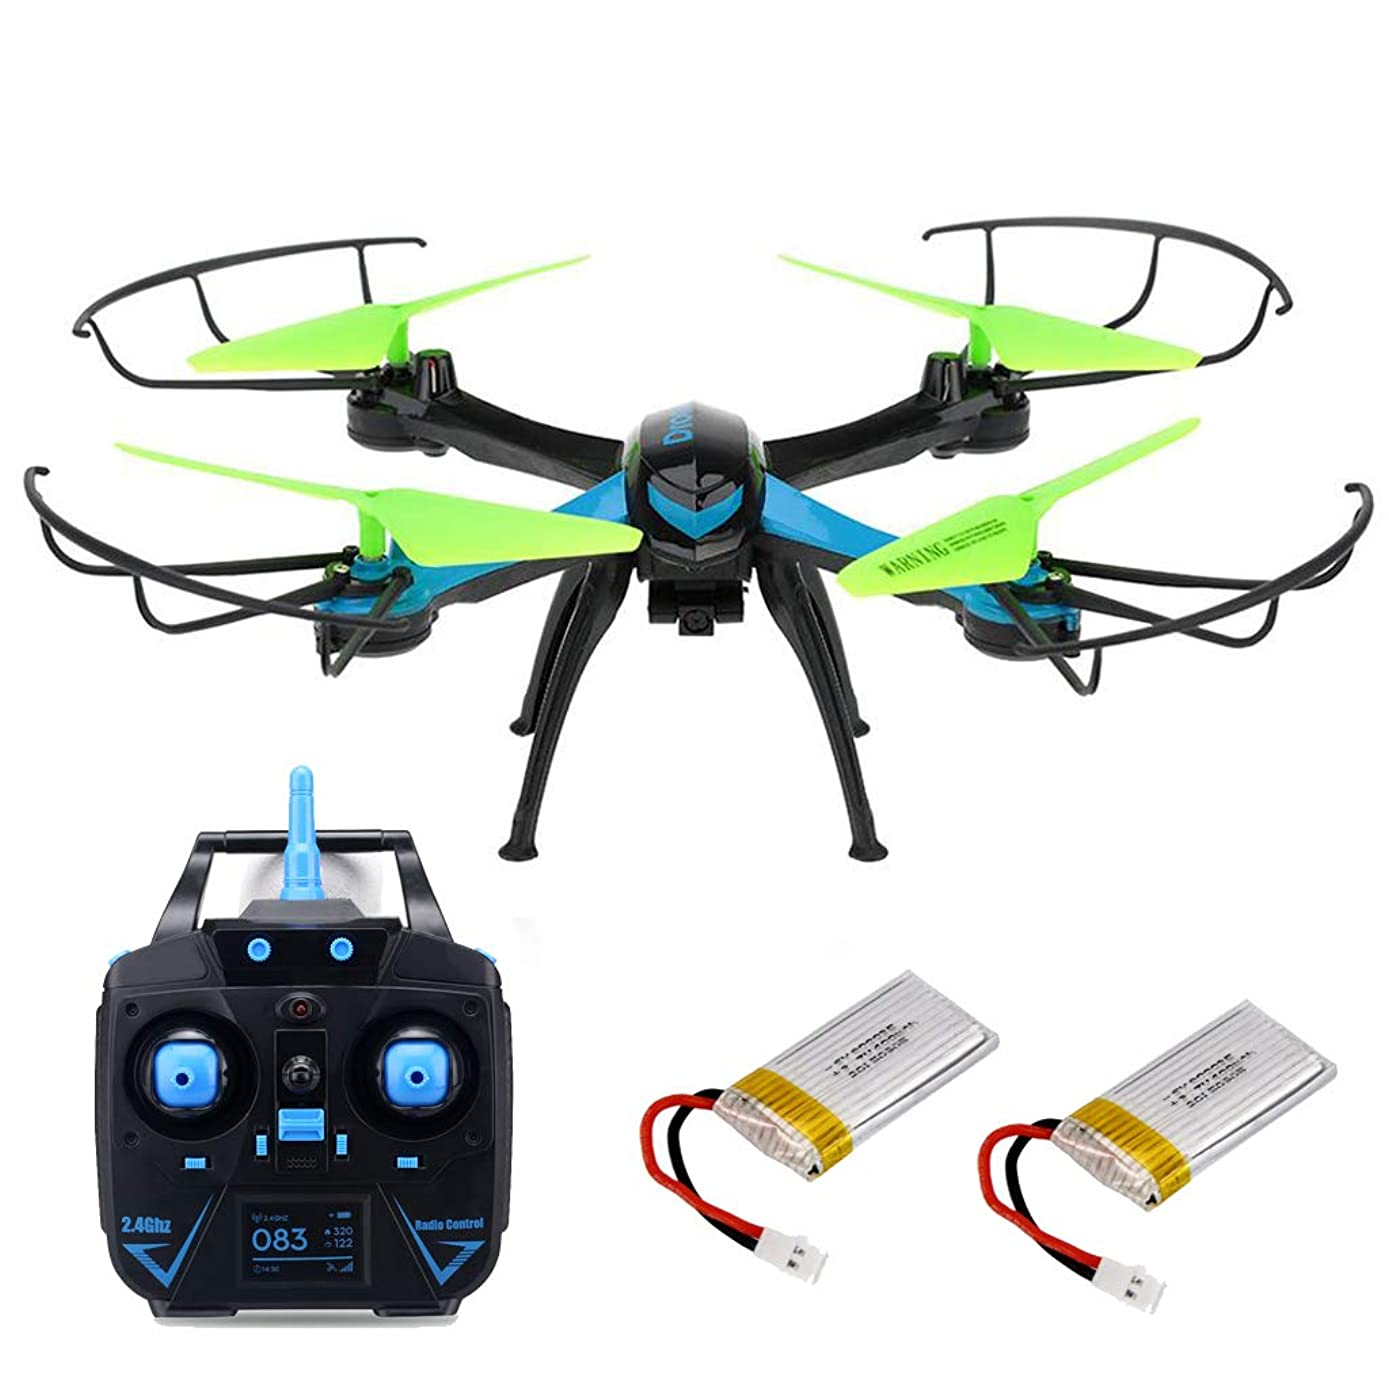 JJRC H98 RC Quadcopter Drone with Camera 2.4GHz 4CH 6-Axis Gyro Radio Control Helicopter Quad, Headless Mode, 3D Rollover, 1 Set of Free Floureon Props, Blue & Green